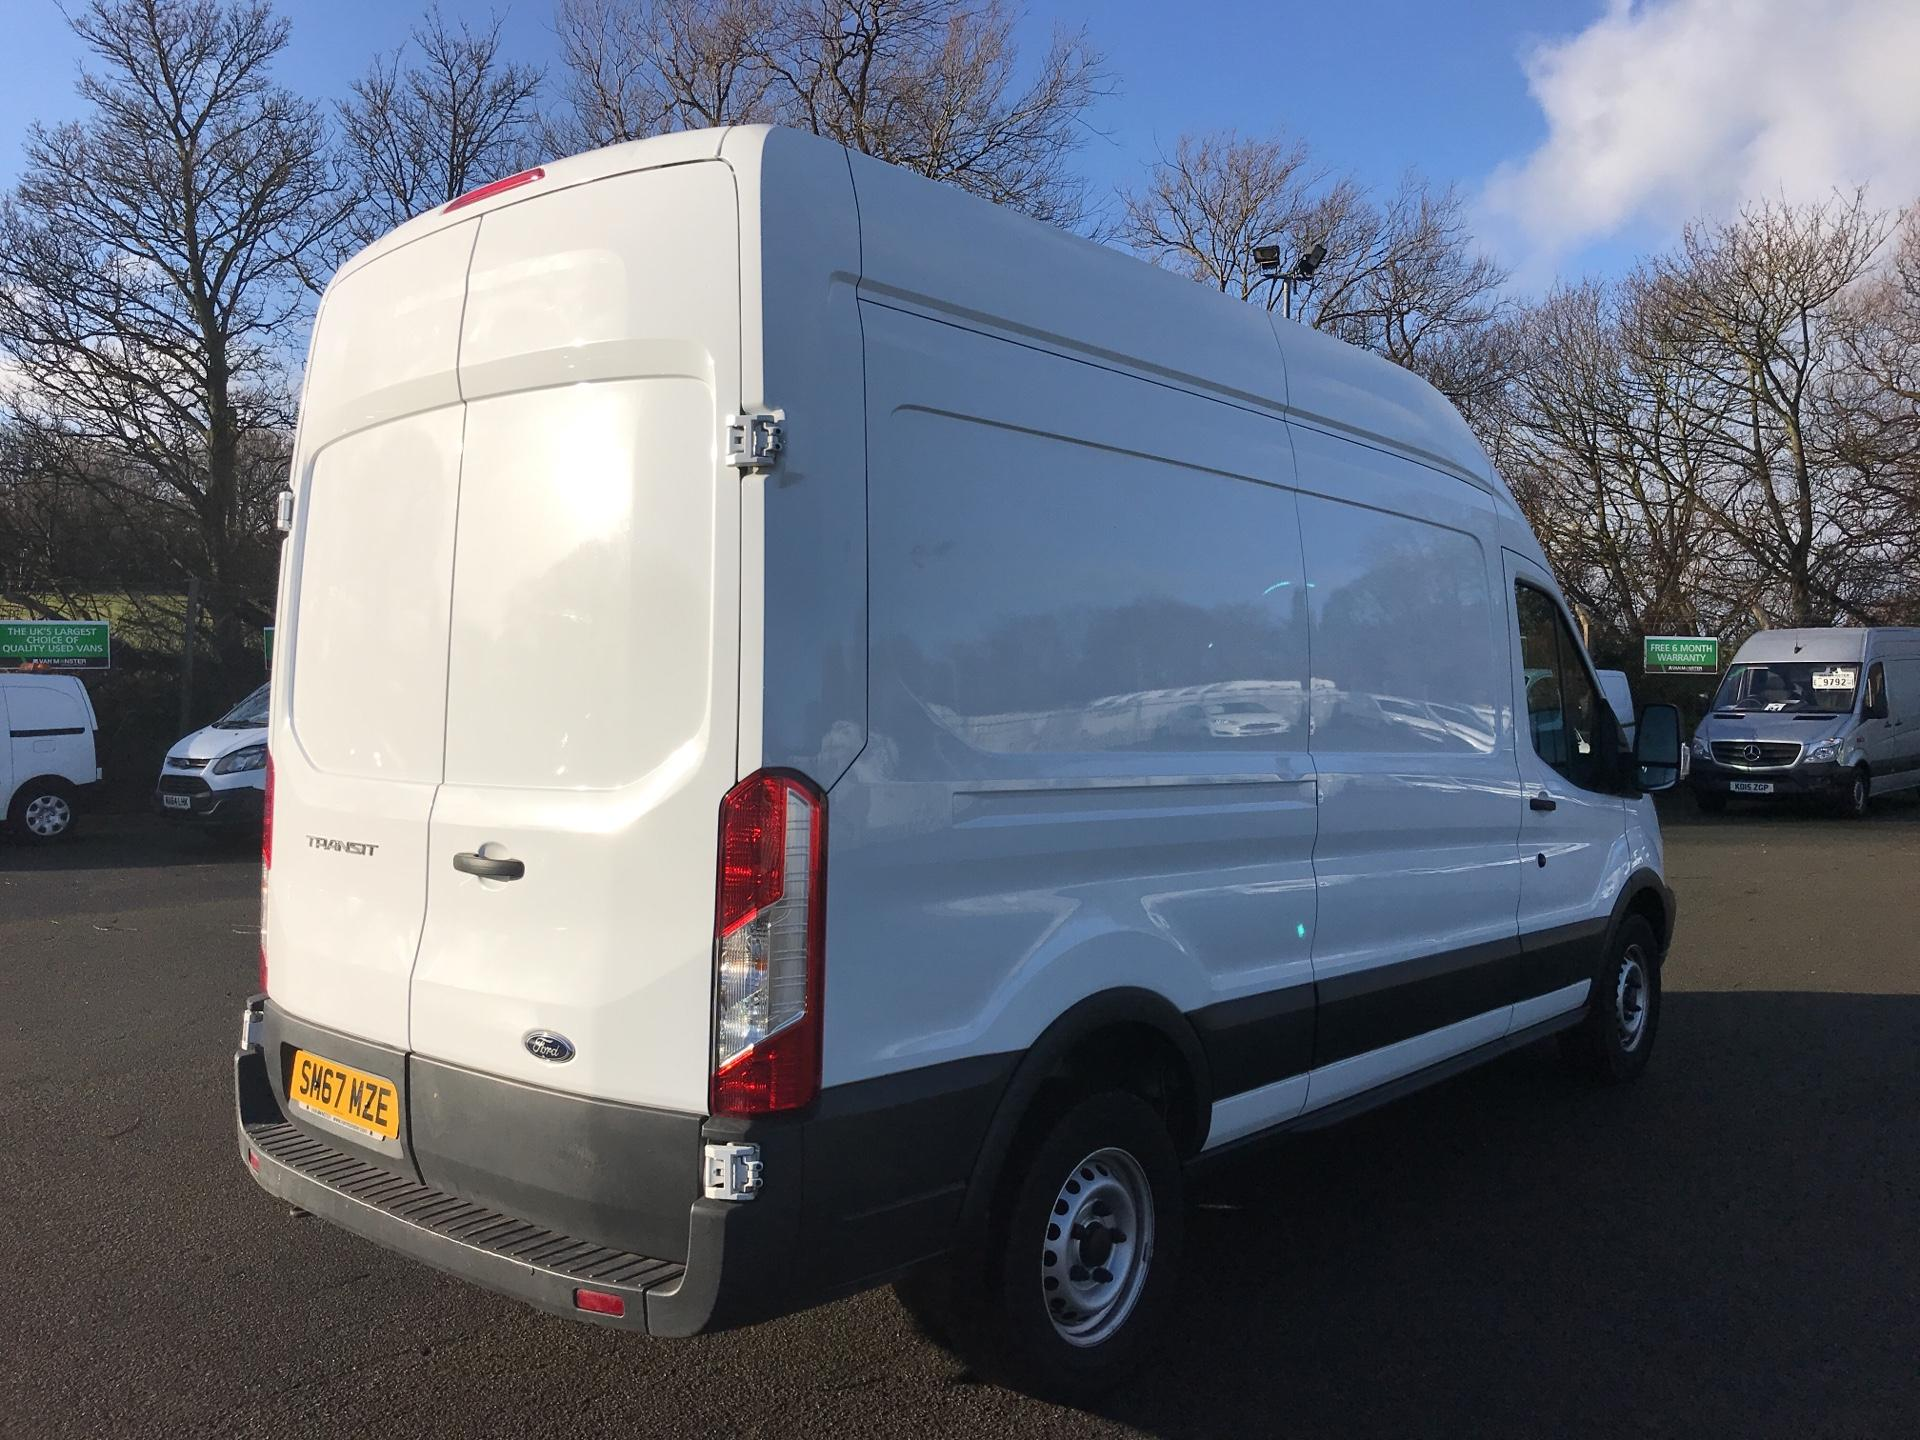 2018 Ford Transit L3 H3 VAN 130PS EURO 6  *VALUE RANGE VEHICLE - CONDITION REFLECTED IN PRICE*  (SM67MZE) Image 3